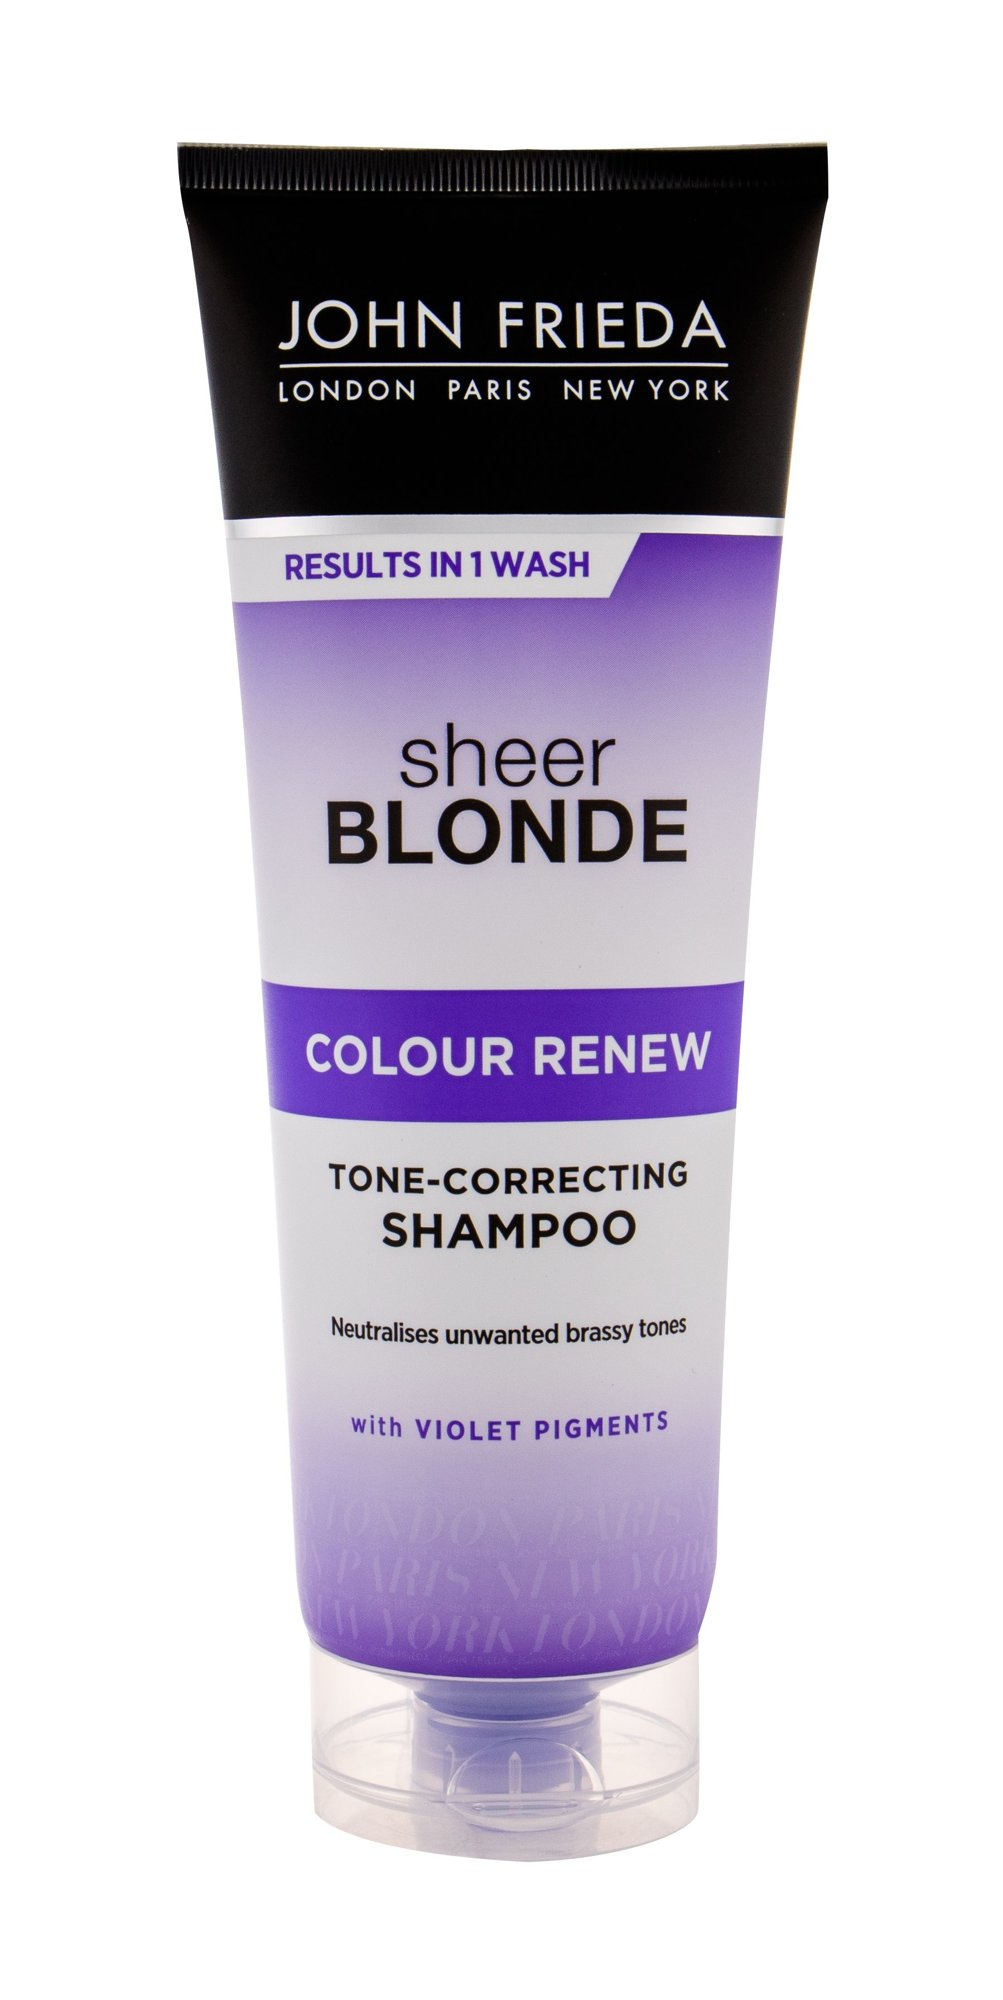 John Frieda Sheer Blonde Shampoo 250ml  Colour Renew